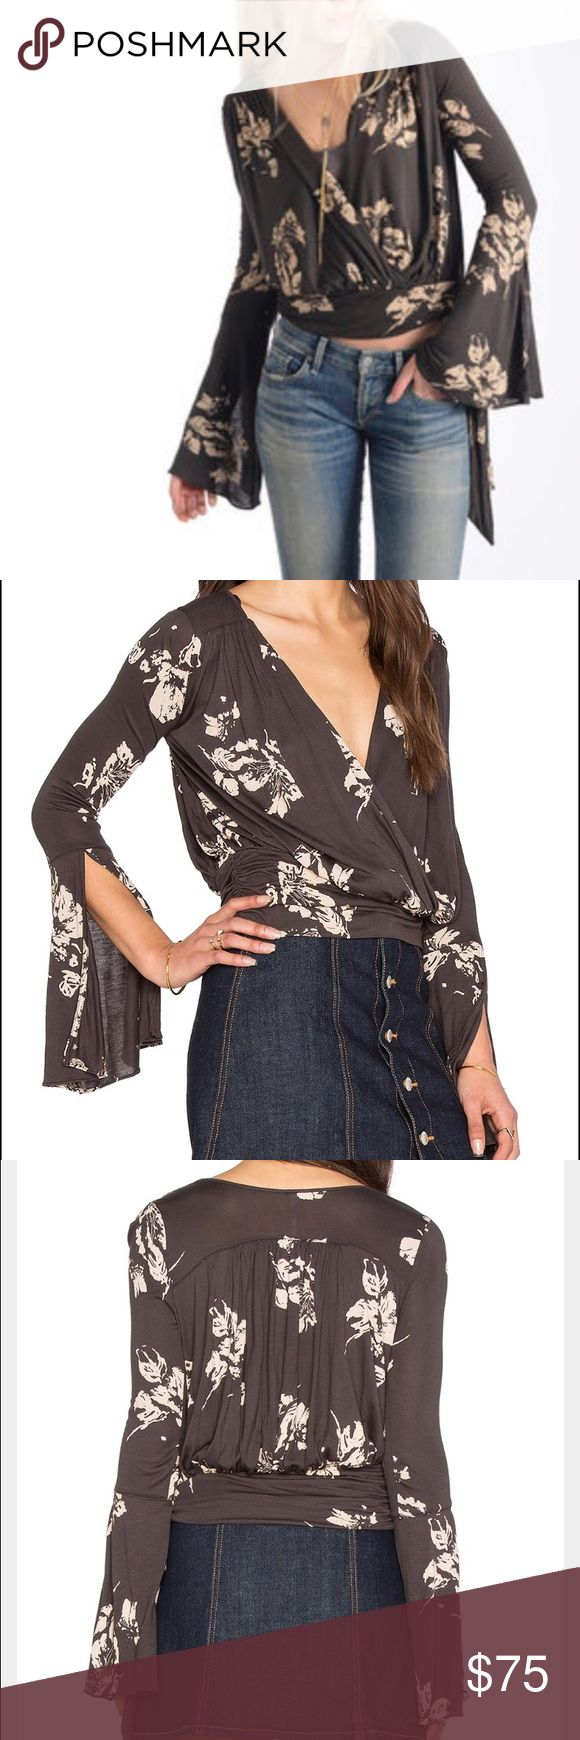 NWOT Free People Fiona Wrap Top NEW WITHOUT TAGS. Free People fiona wrap top with bell sleeves. Ties at the side. Grey with pale pink floral design. Never worn! Free People Tops Blouses